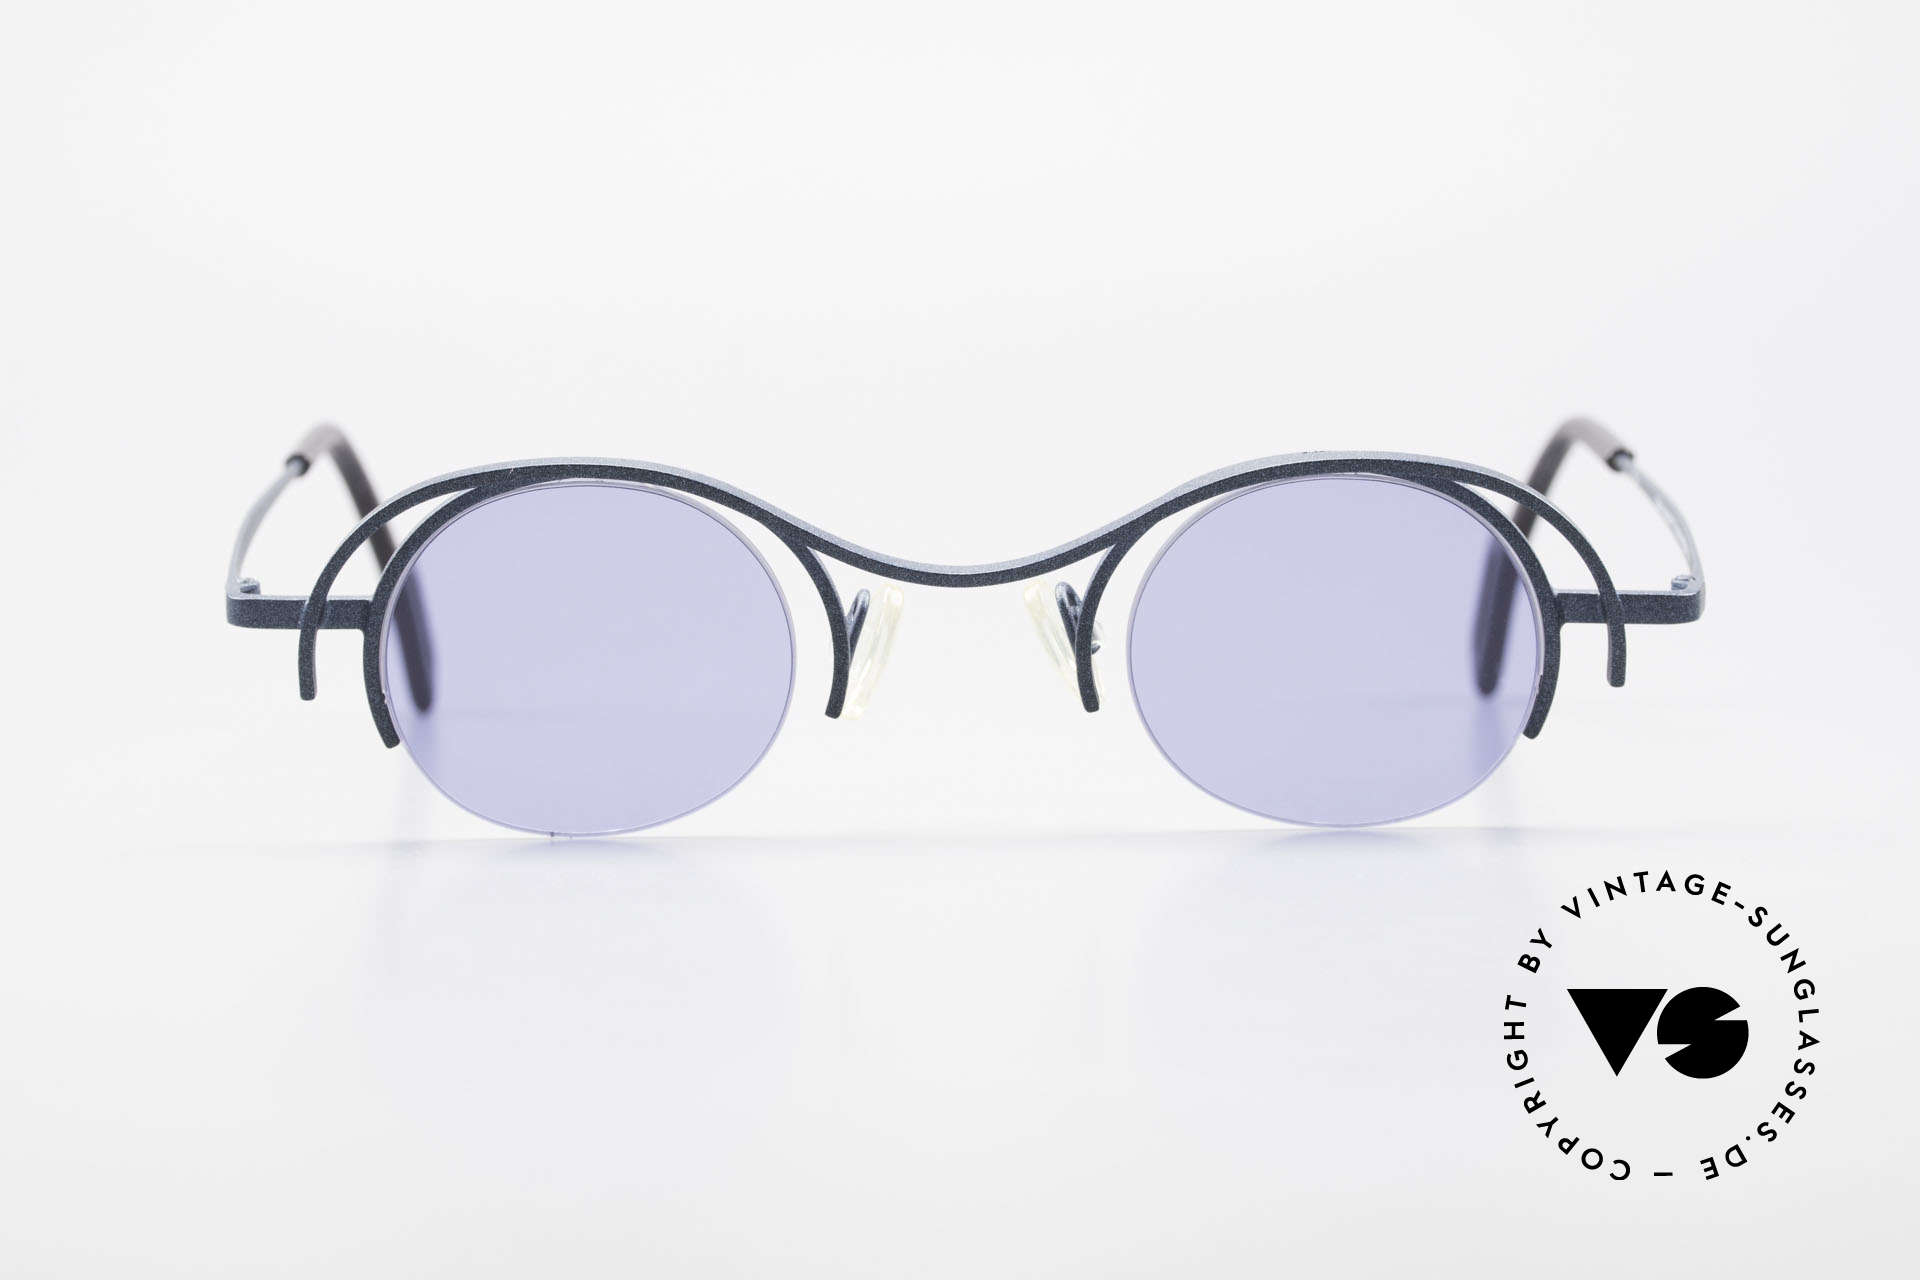 Theo Belgium Summer Round Ladies Designer Shades, founded in 1989 as 'opposite pole' to the 'mainstream', Made for Women